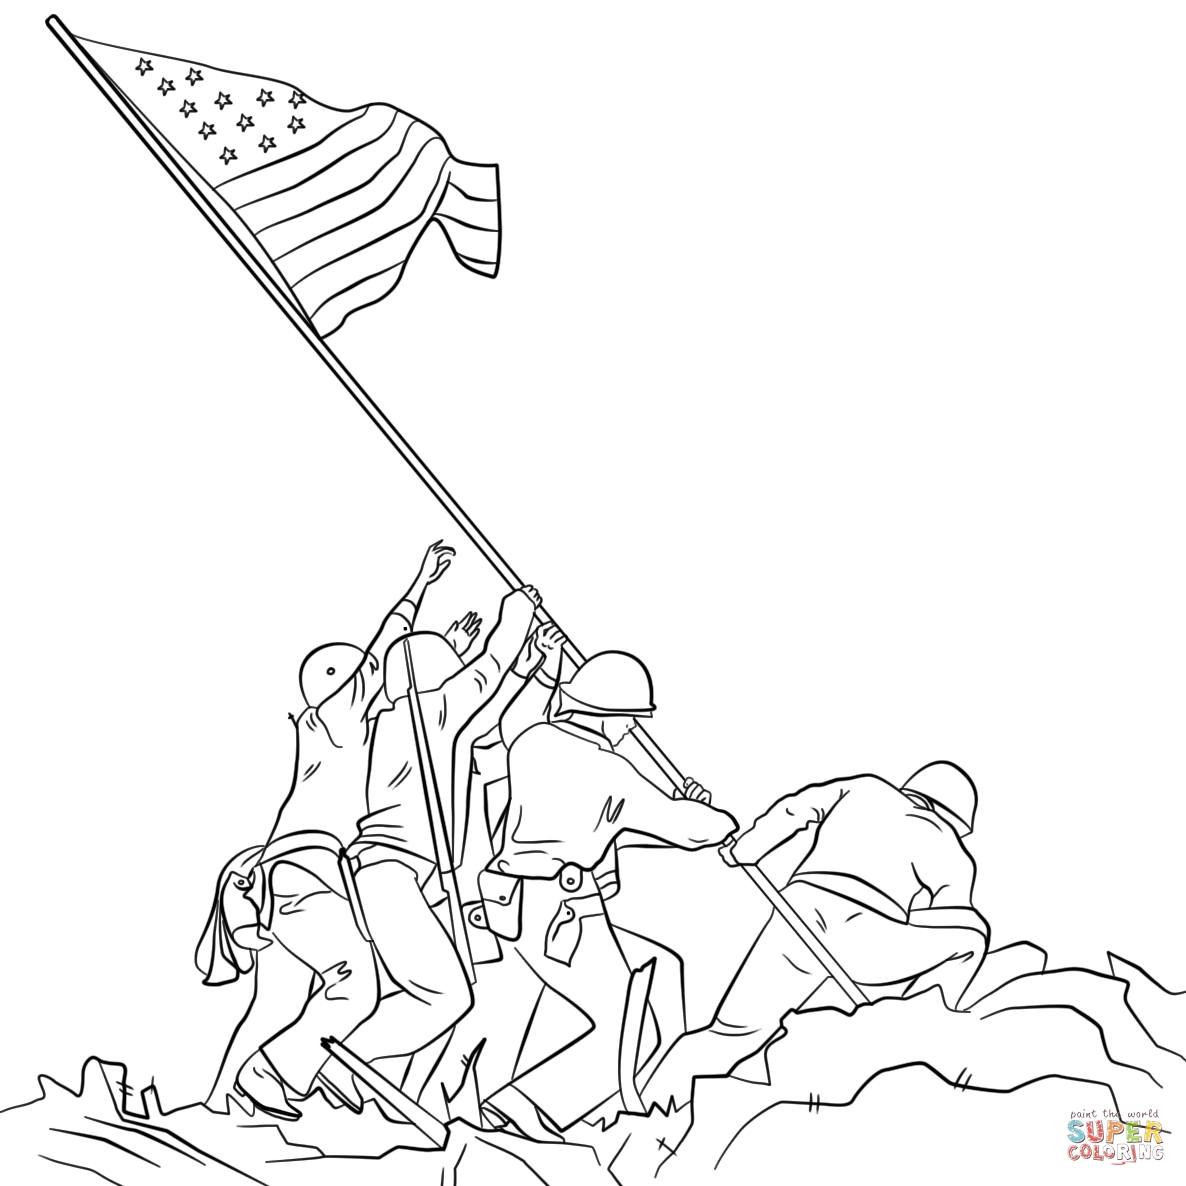 1186x1186 Awesome Flag England Coloring Pages Free Coloring Pages Download